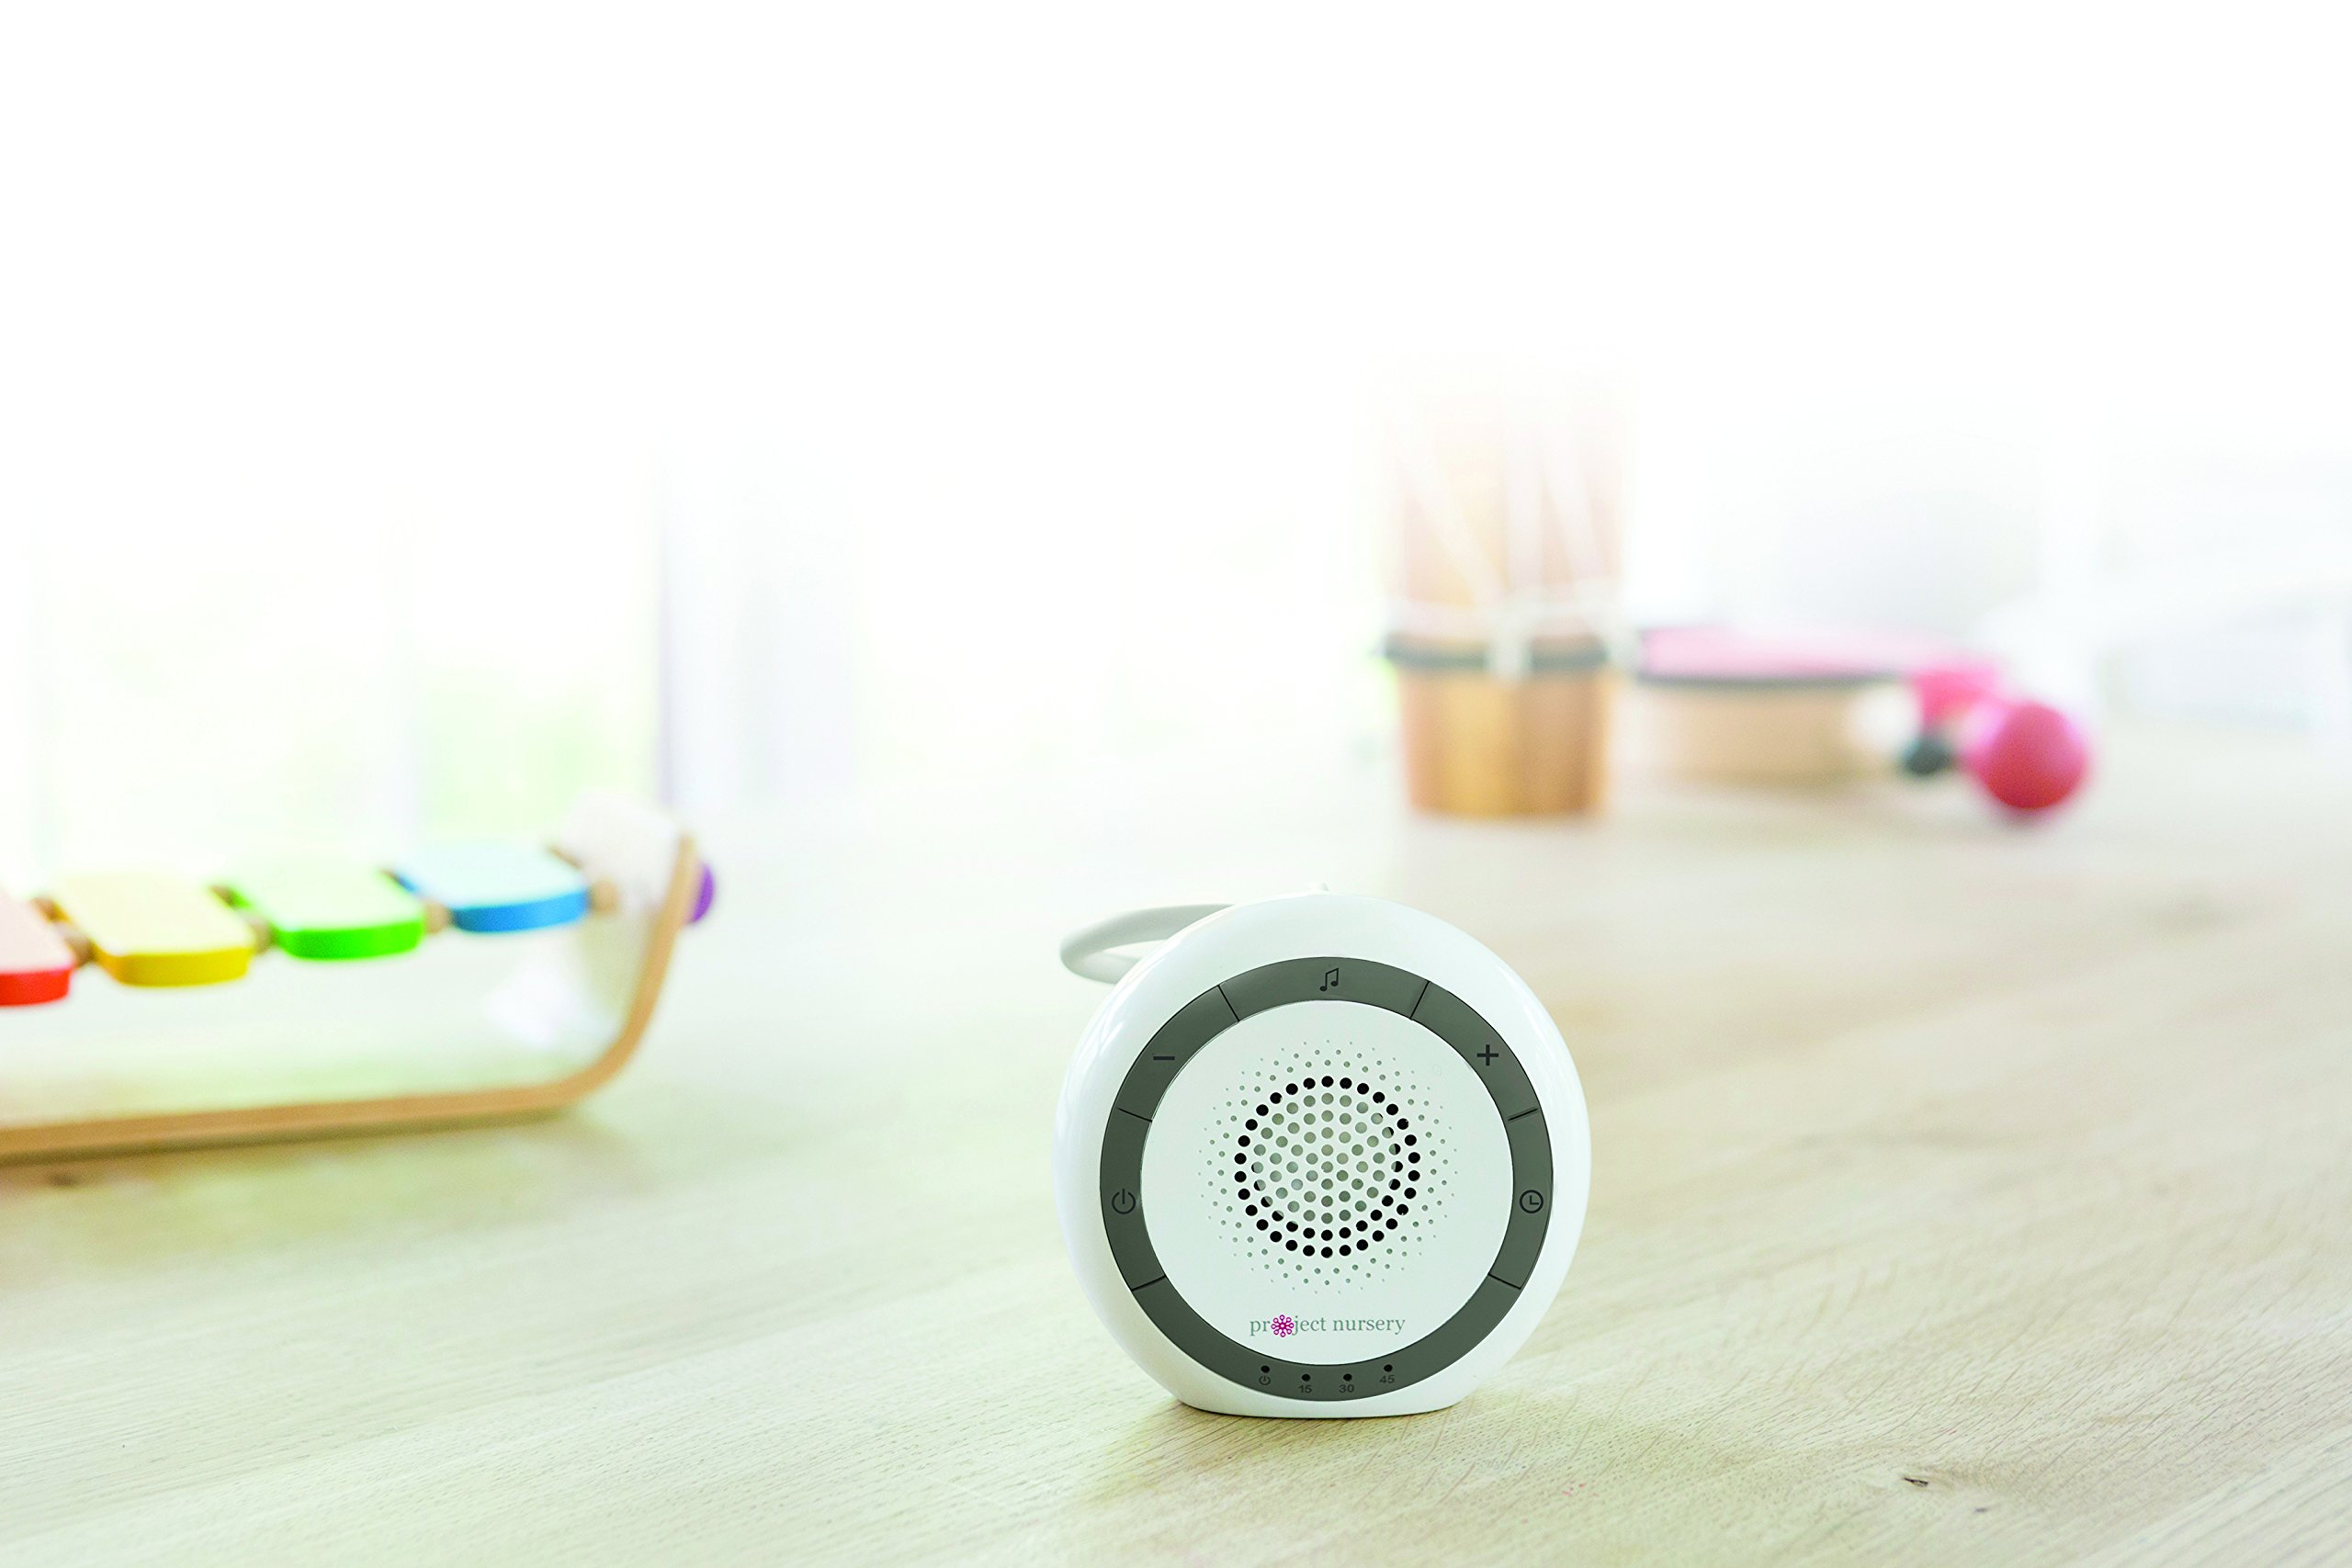 Portable Sound Machine, White Noise Machine and Sleep Soother with Nature Sounds, White Noise and Lullabies - Sound Soother & White Noise Machine for Baby by Project Nursery